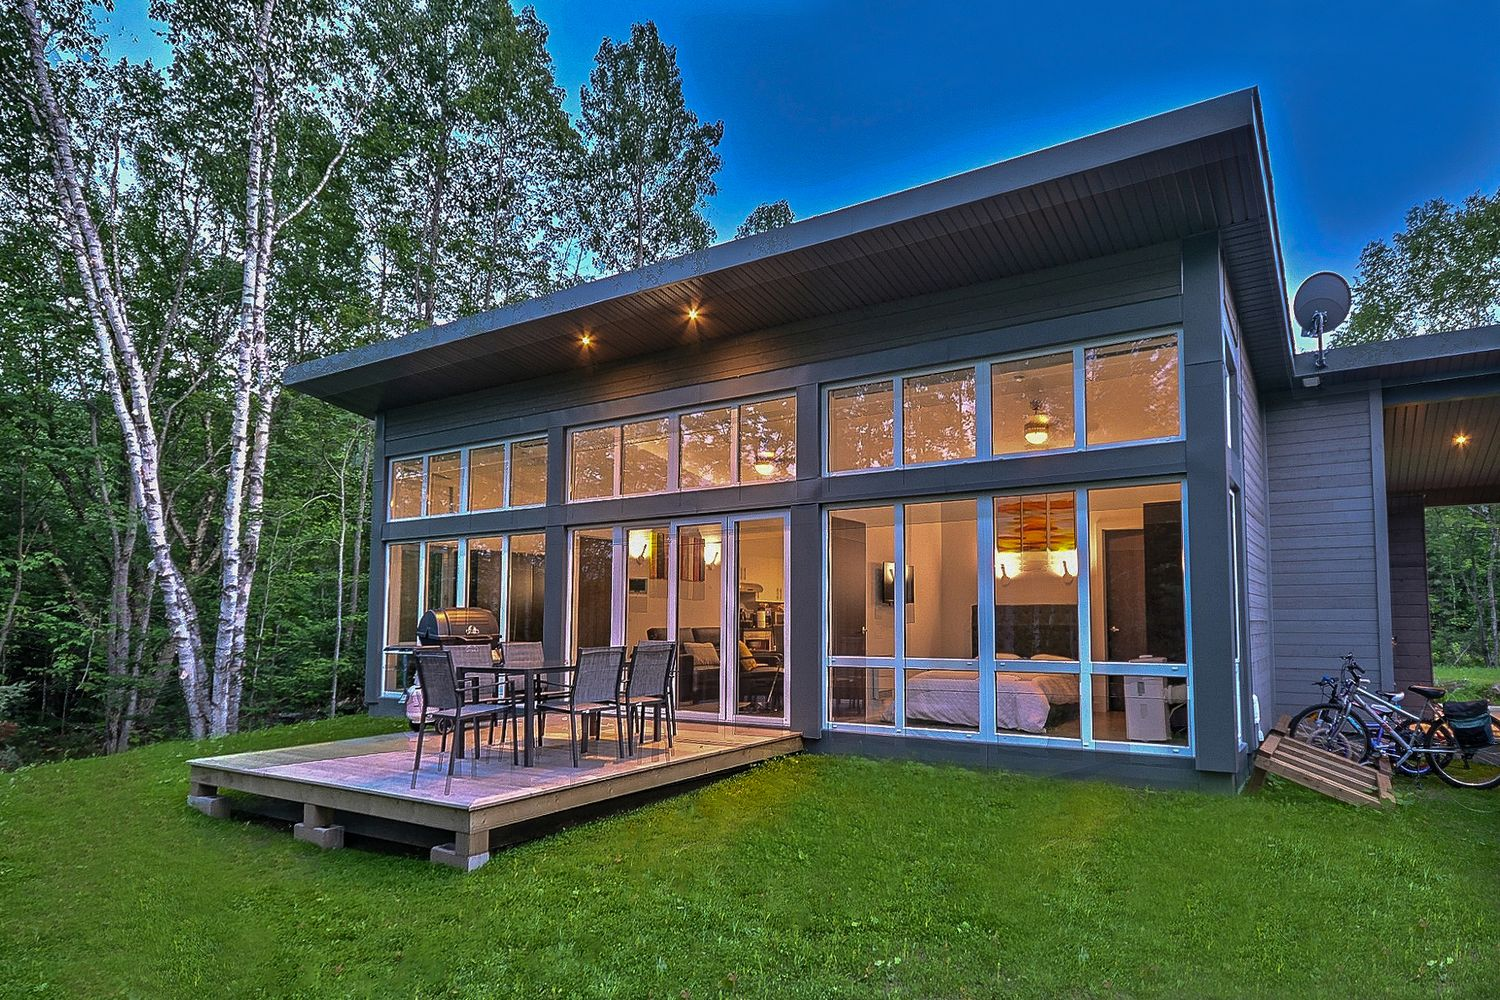 Tremblant chalet rentals, accommodations in Tremblant